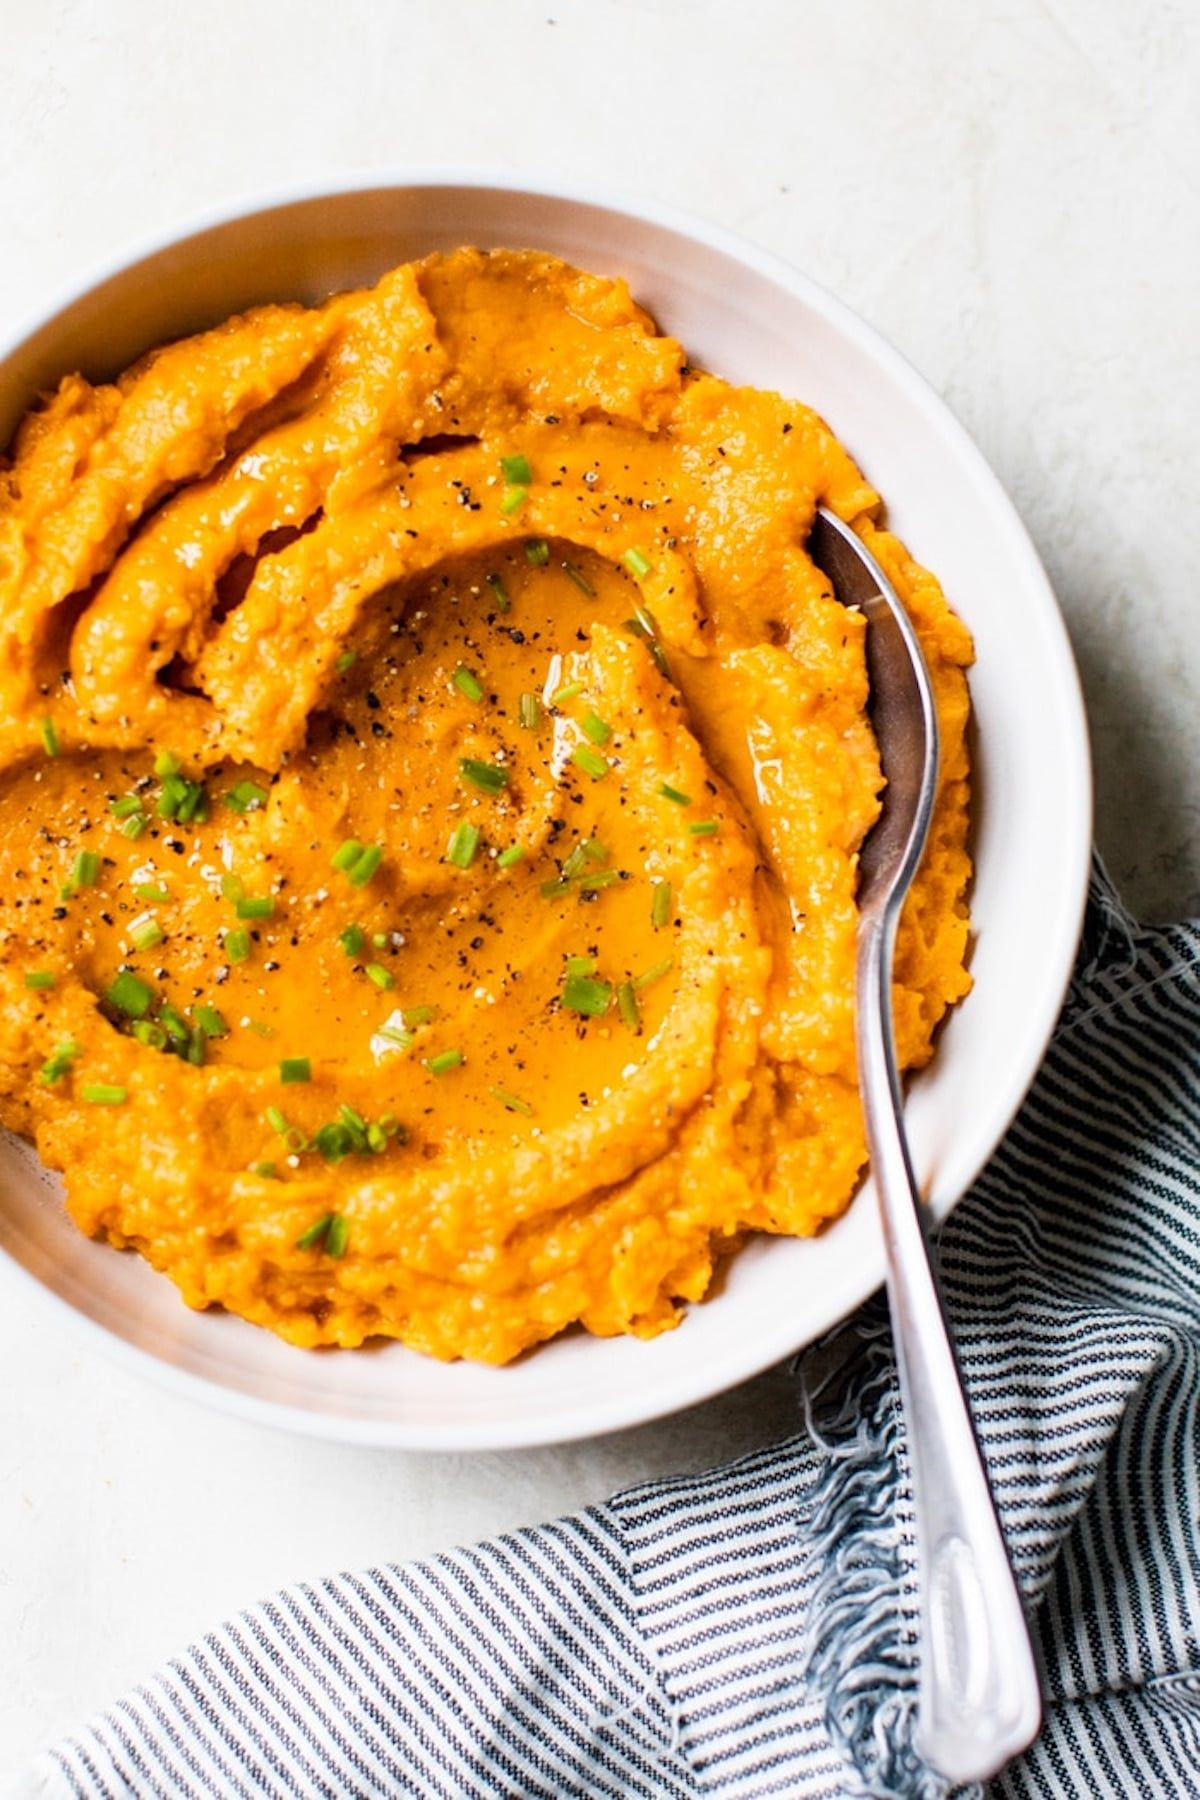 a white bowl of sweet mashed potatoes, with a spoon stuck in it